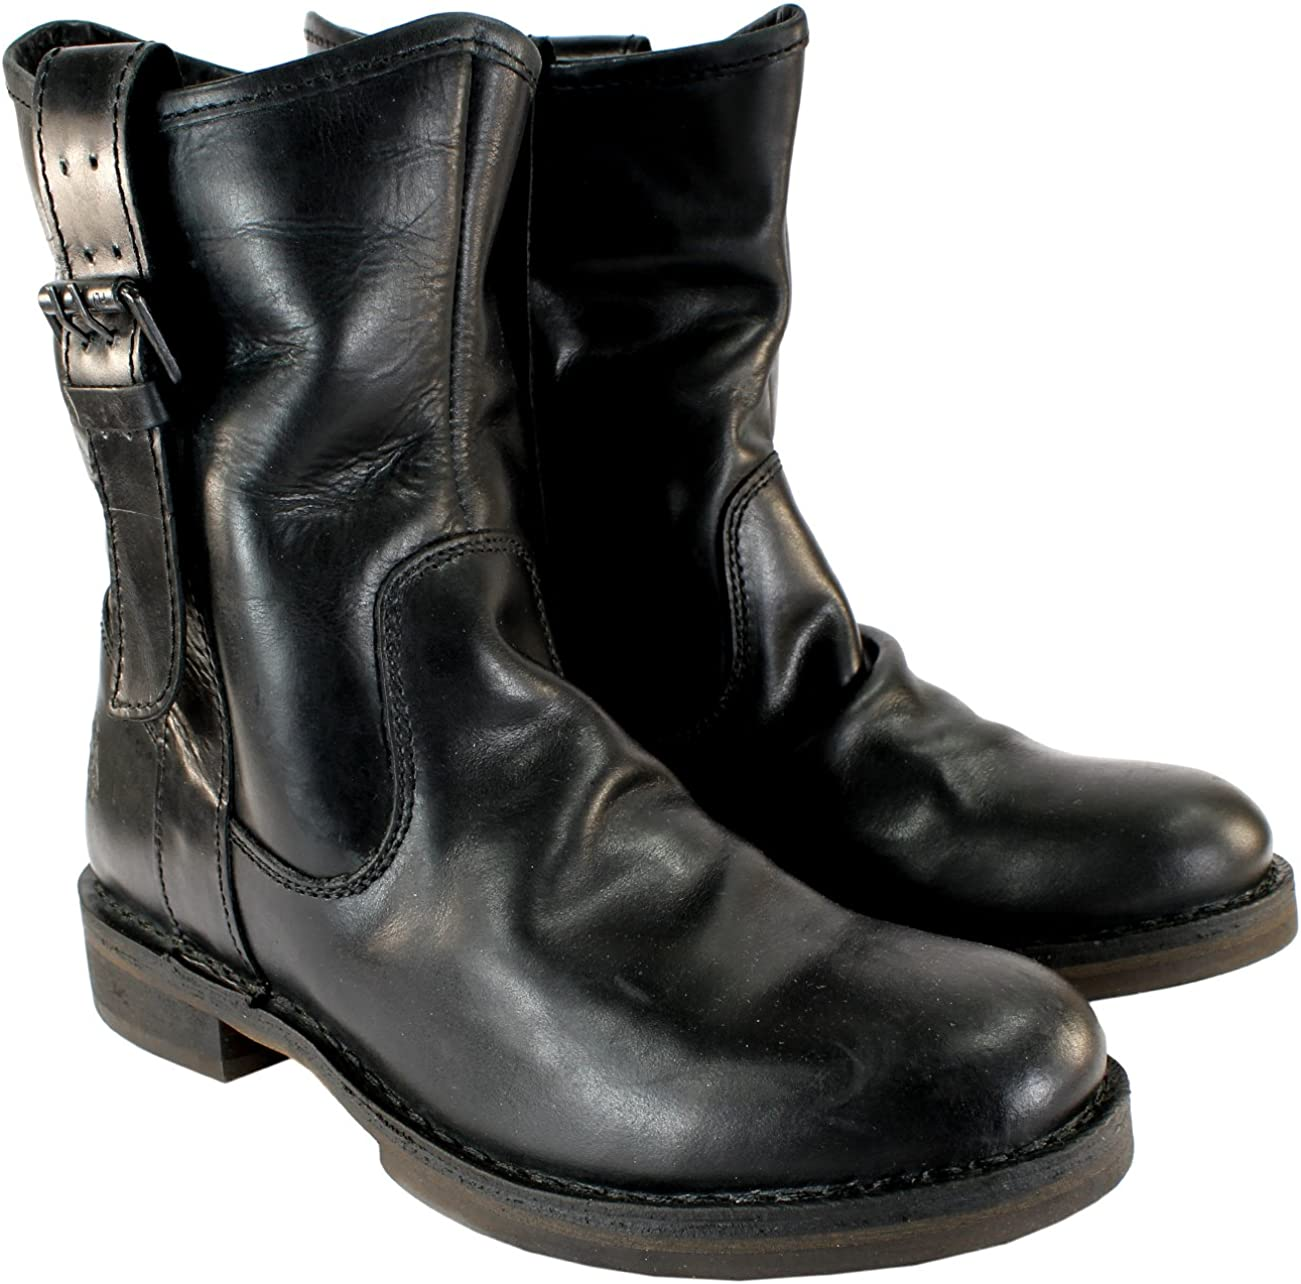 Womens Fly London NOTA Leather Mid Calf Side Buckle Boots 5-10